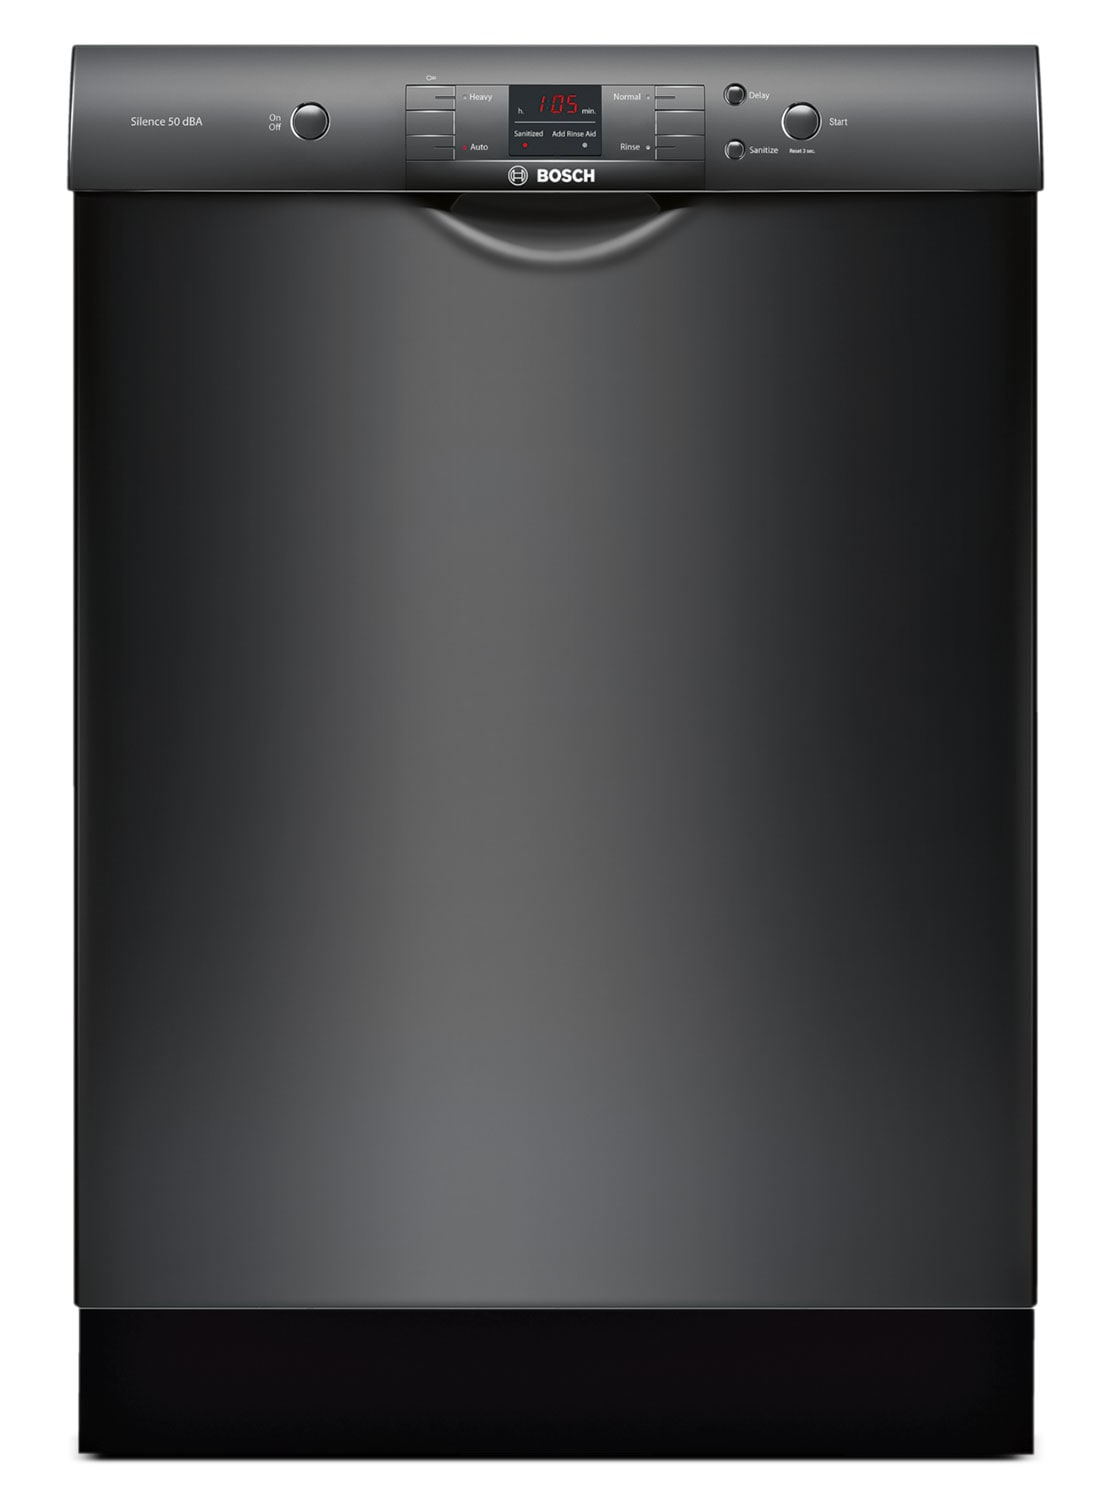 Bosch 300 Series Built-In Dishwasher – Black